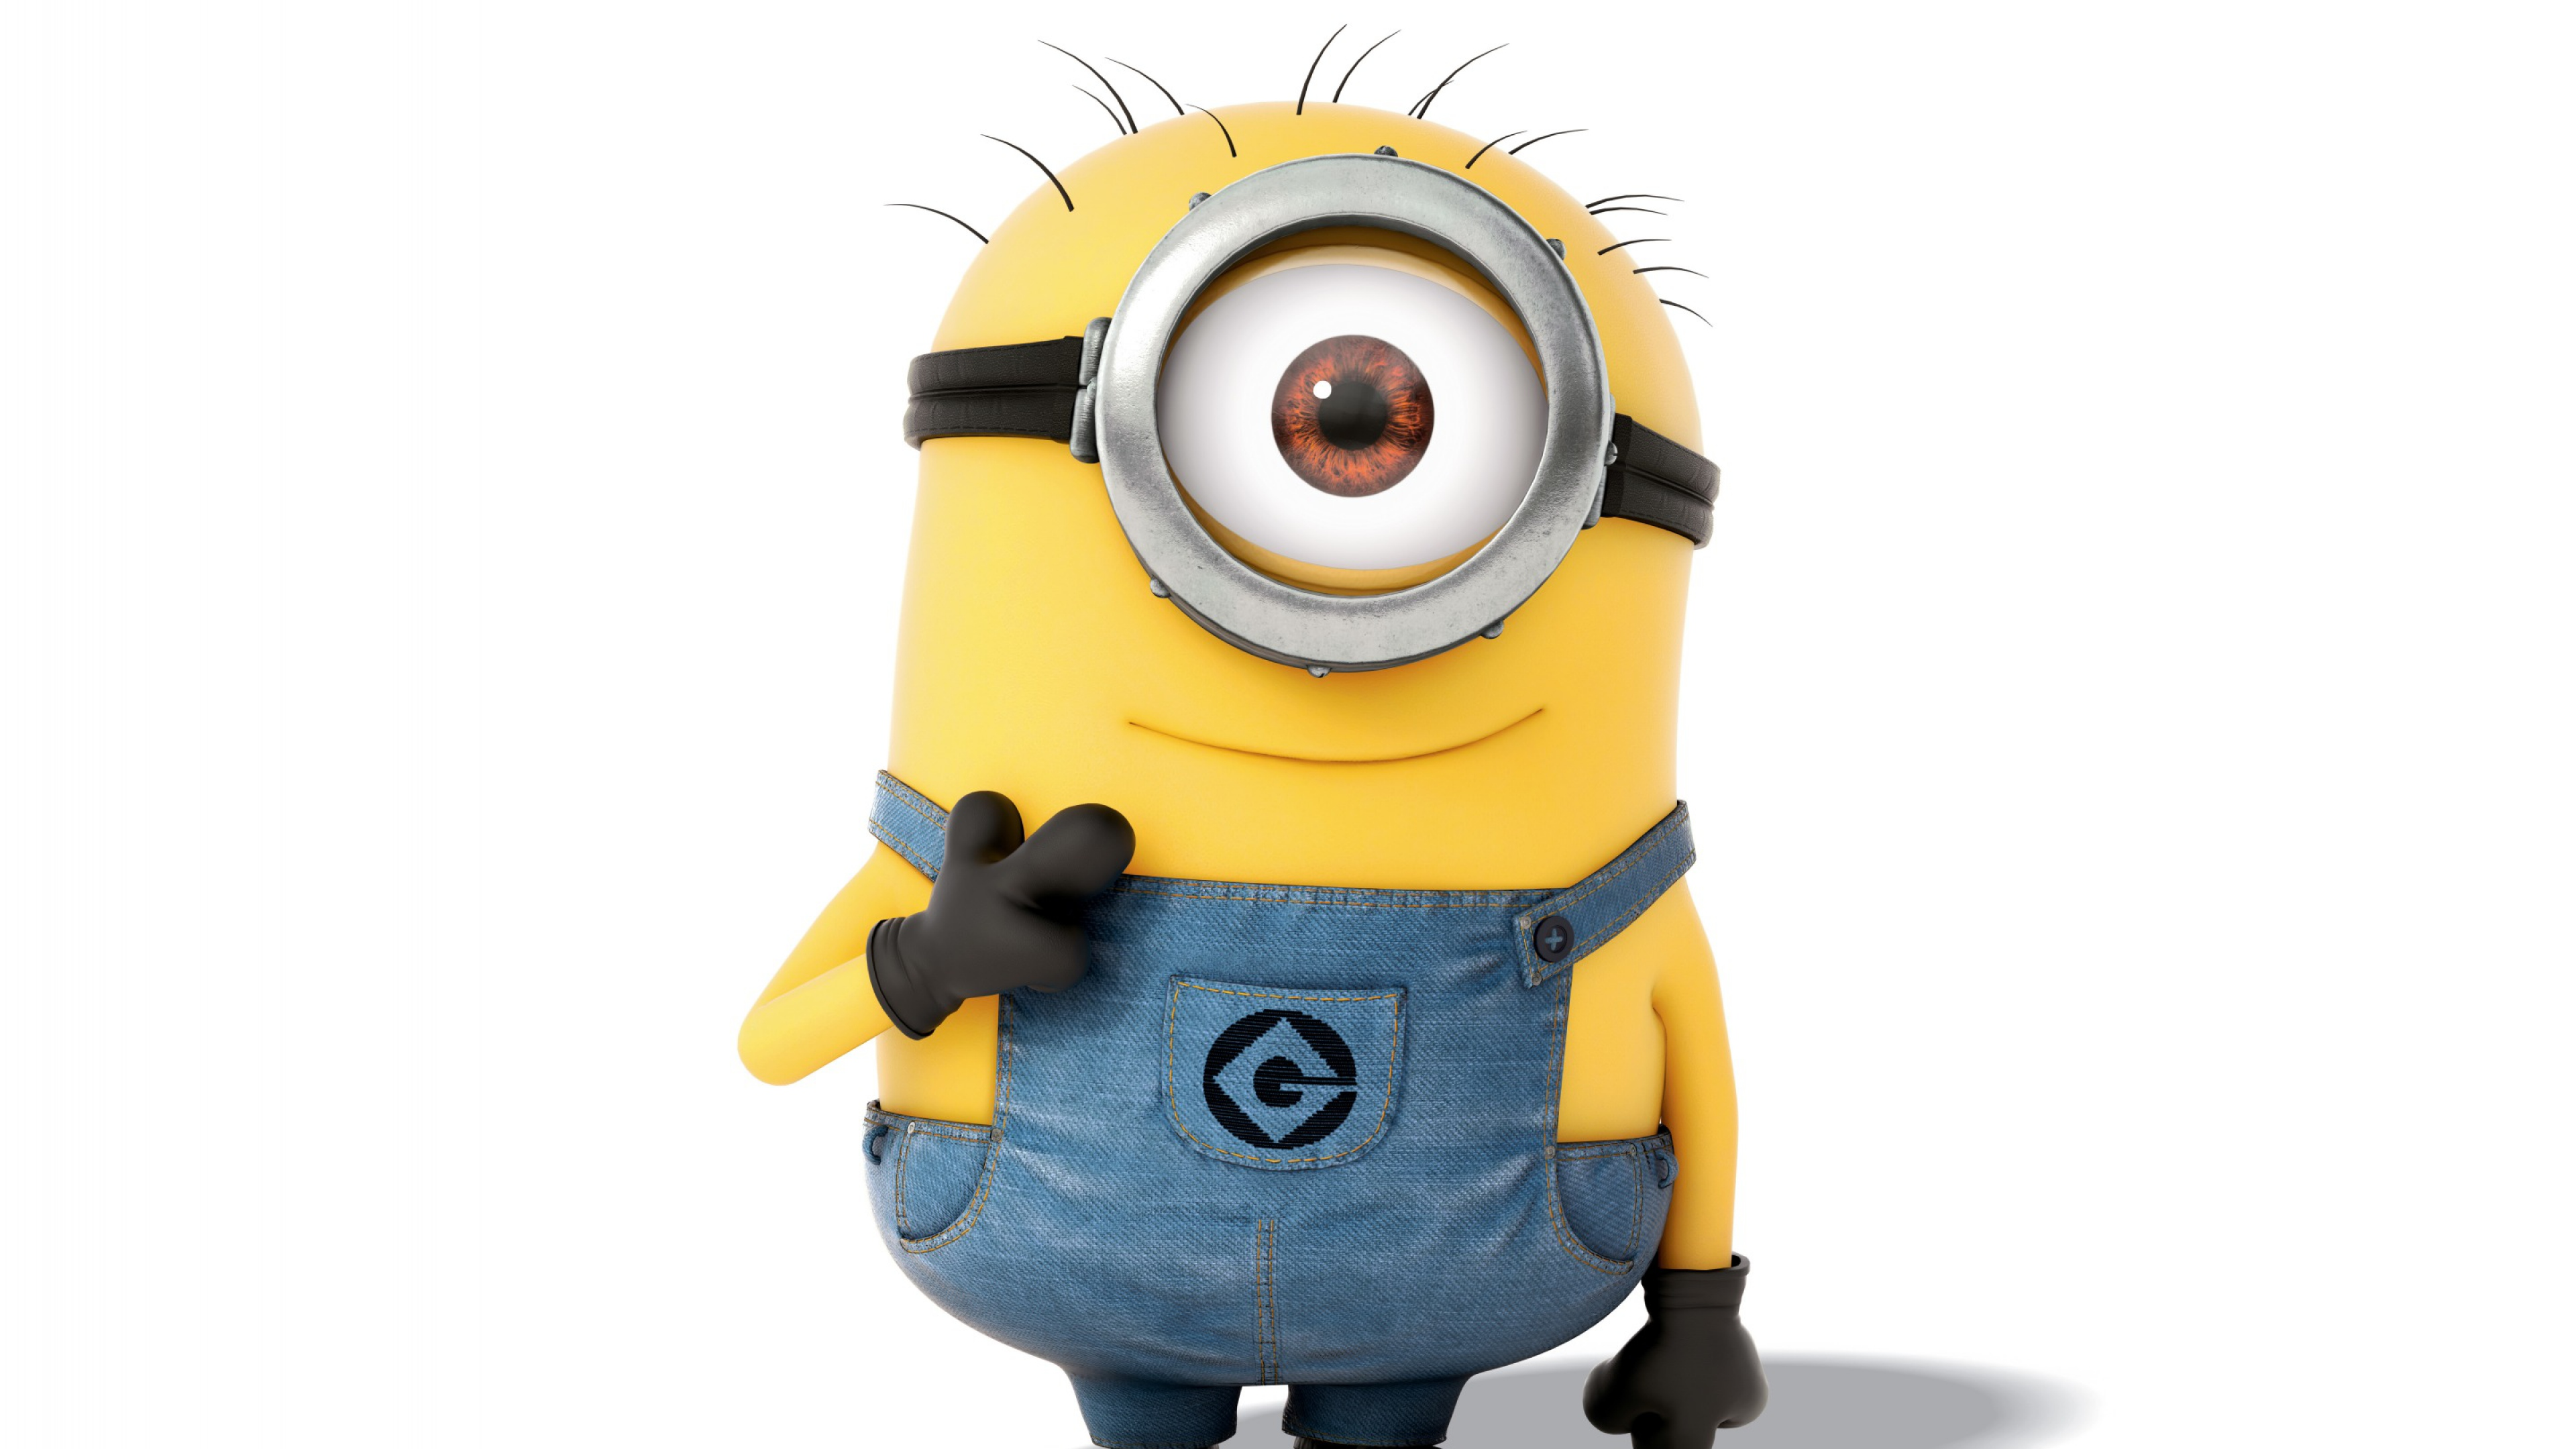 Minions Hd Cartoons 4k Wallpapers Images Backgrounds Photos